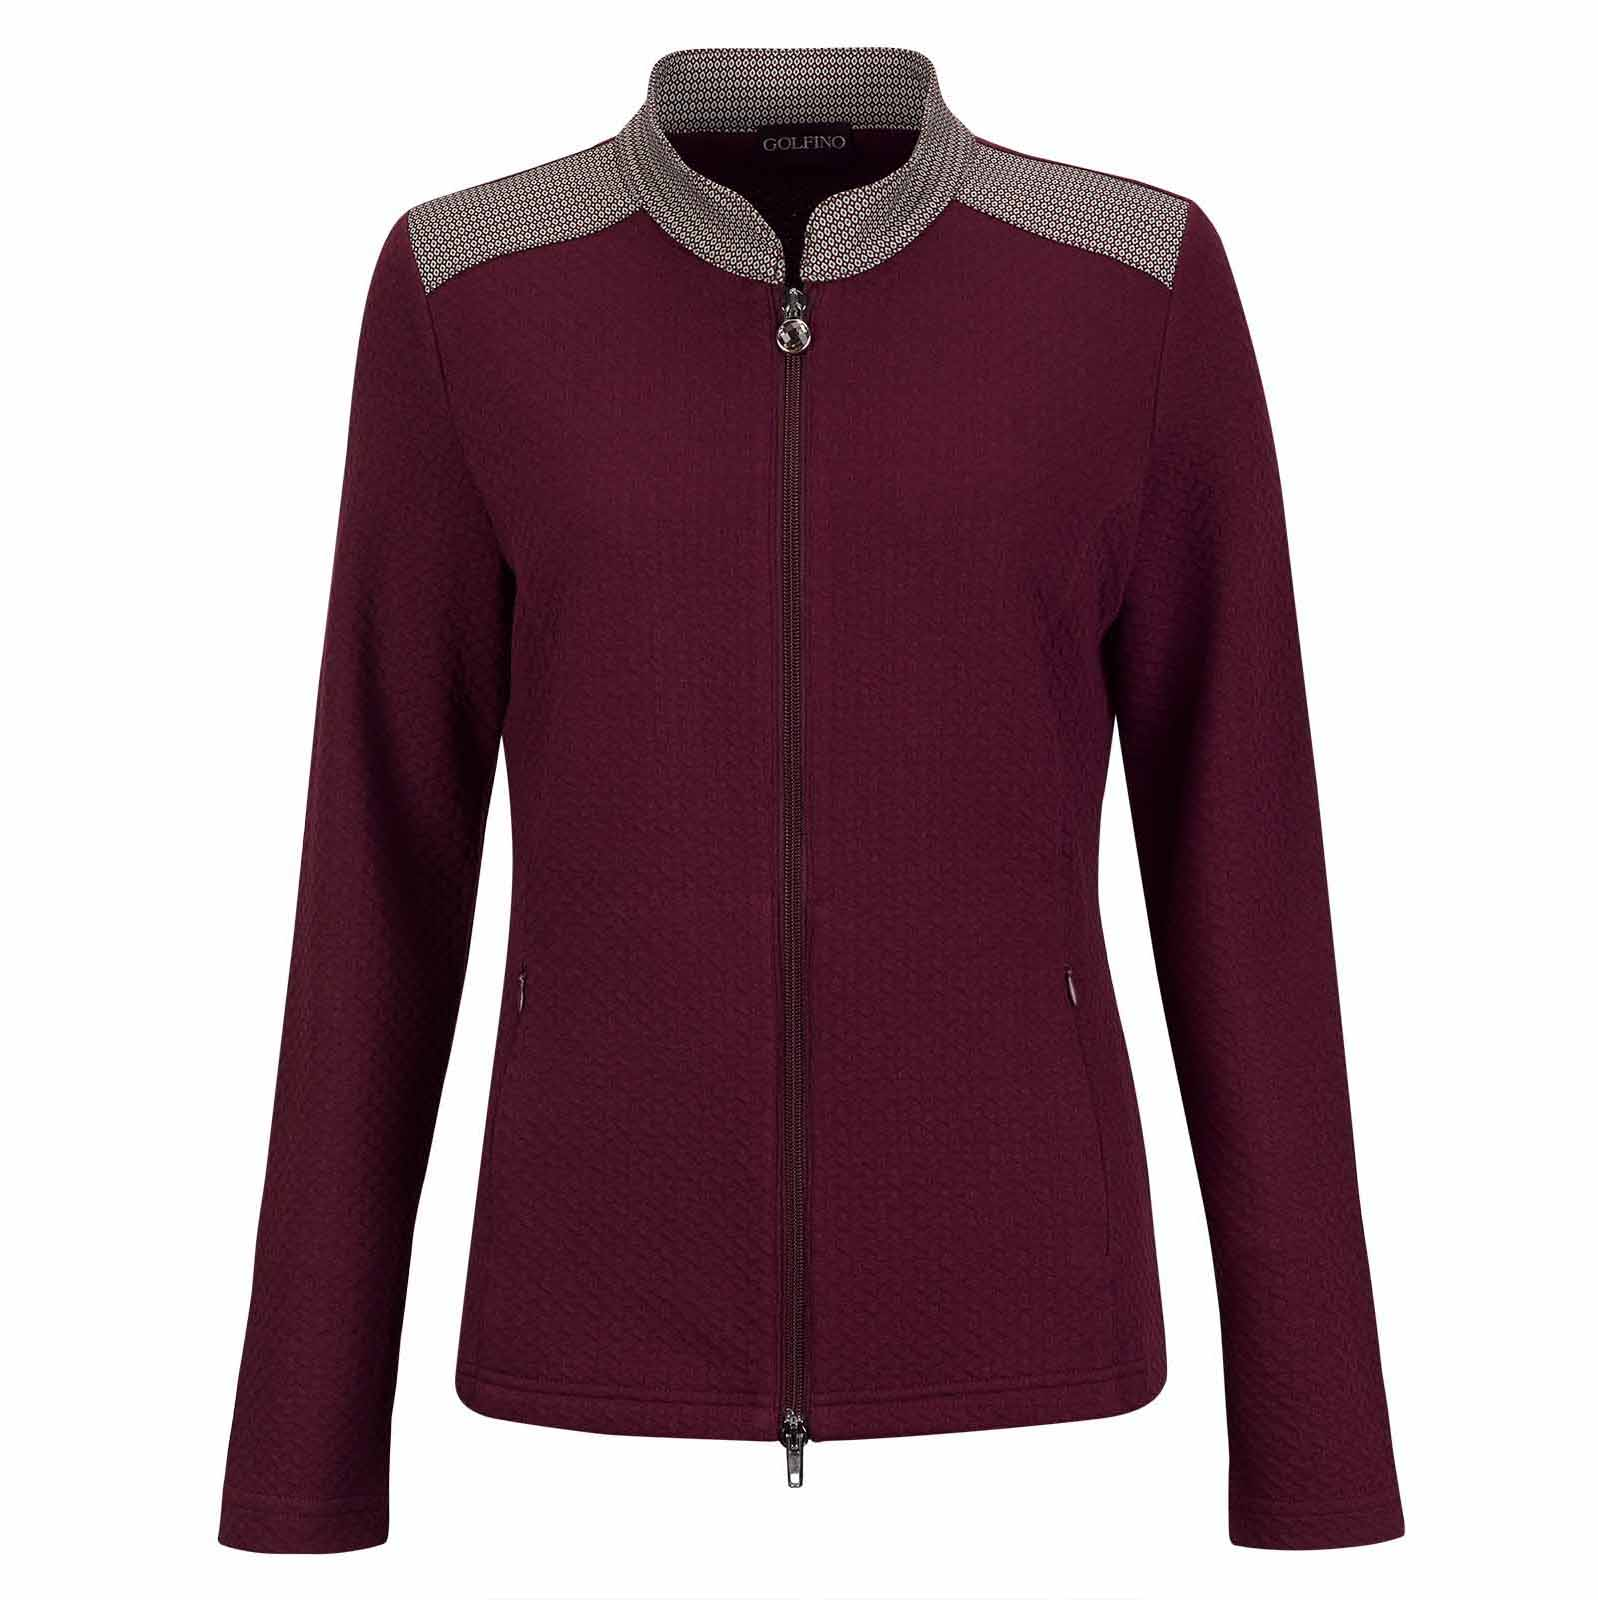 Ladies' mid-layer golf jacket with playful details and stretch function